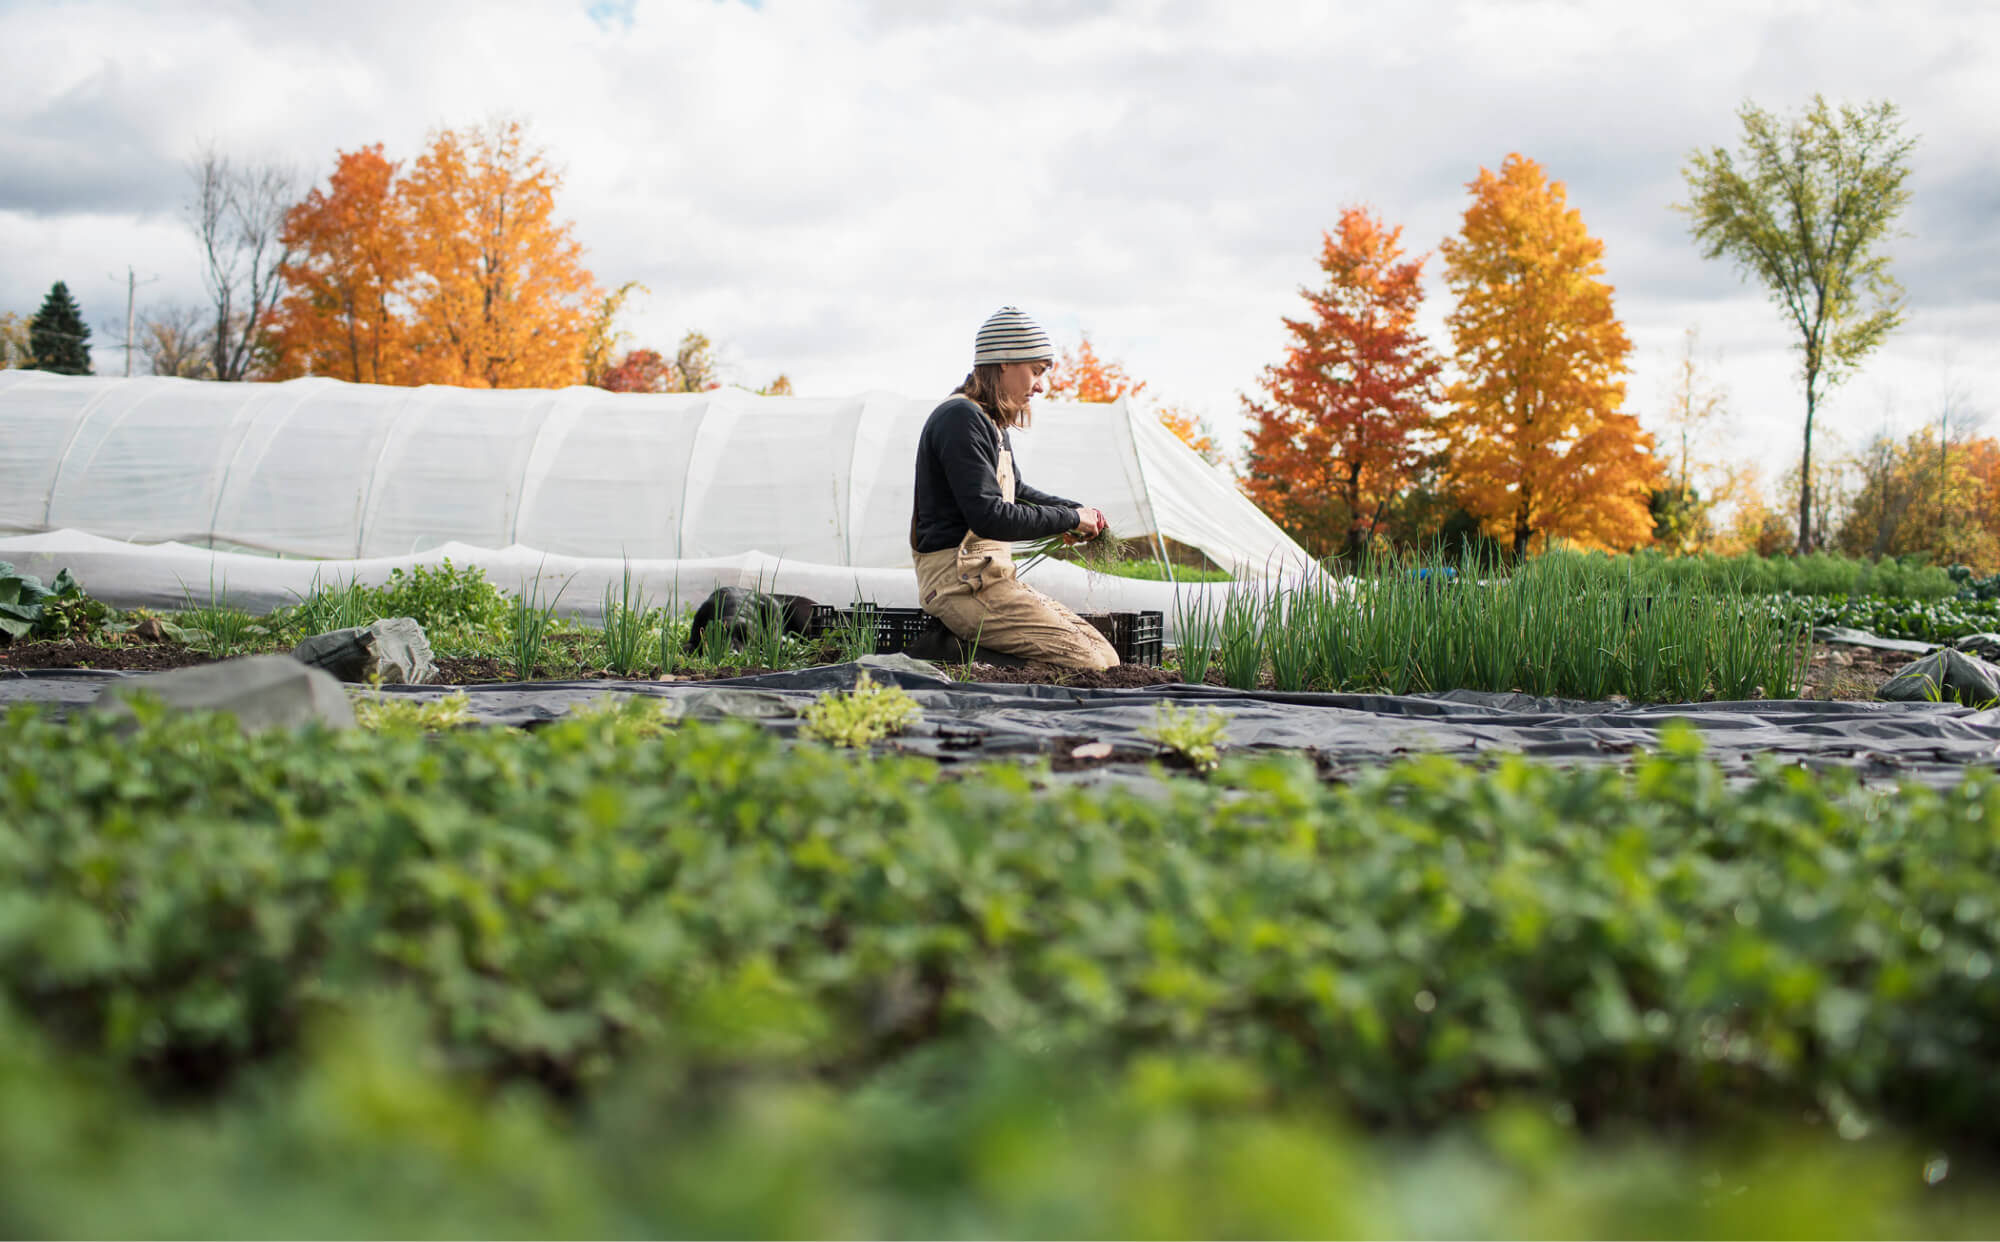 Person harvesting carrots